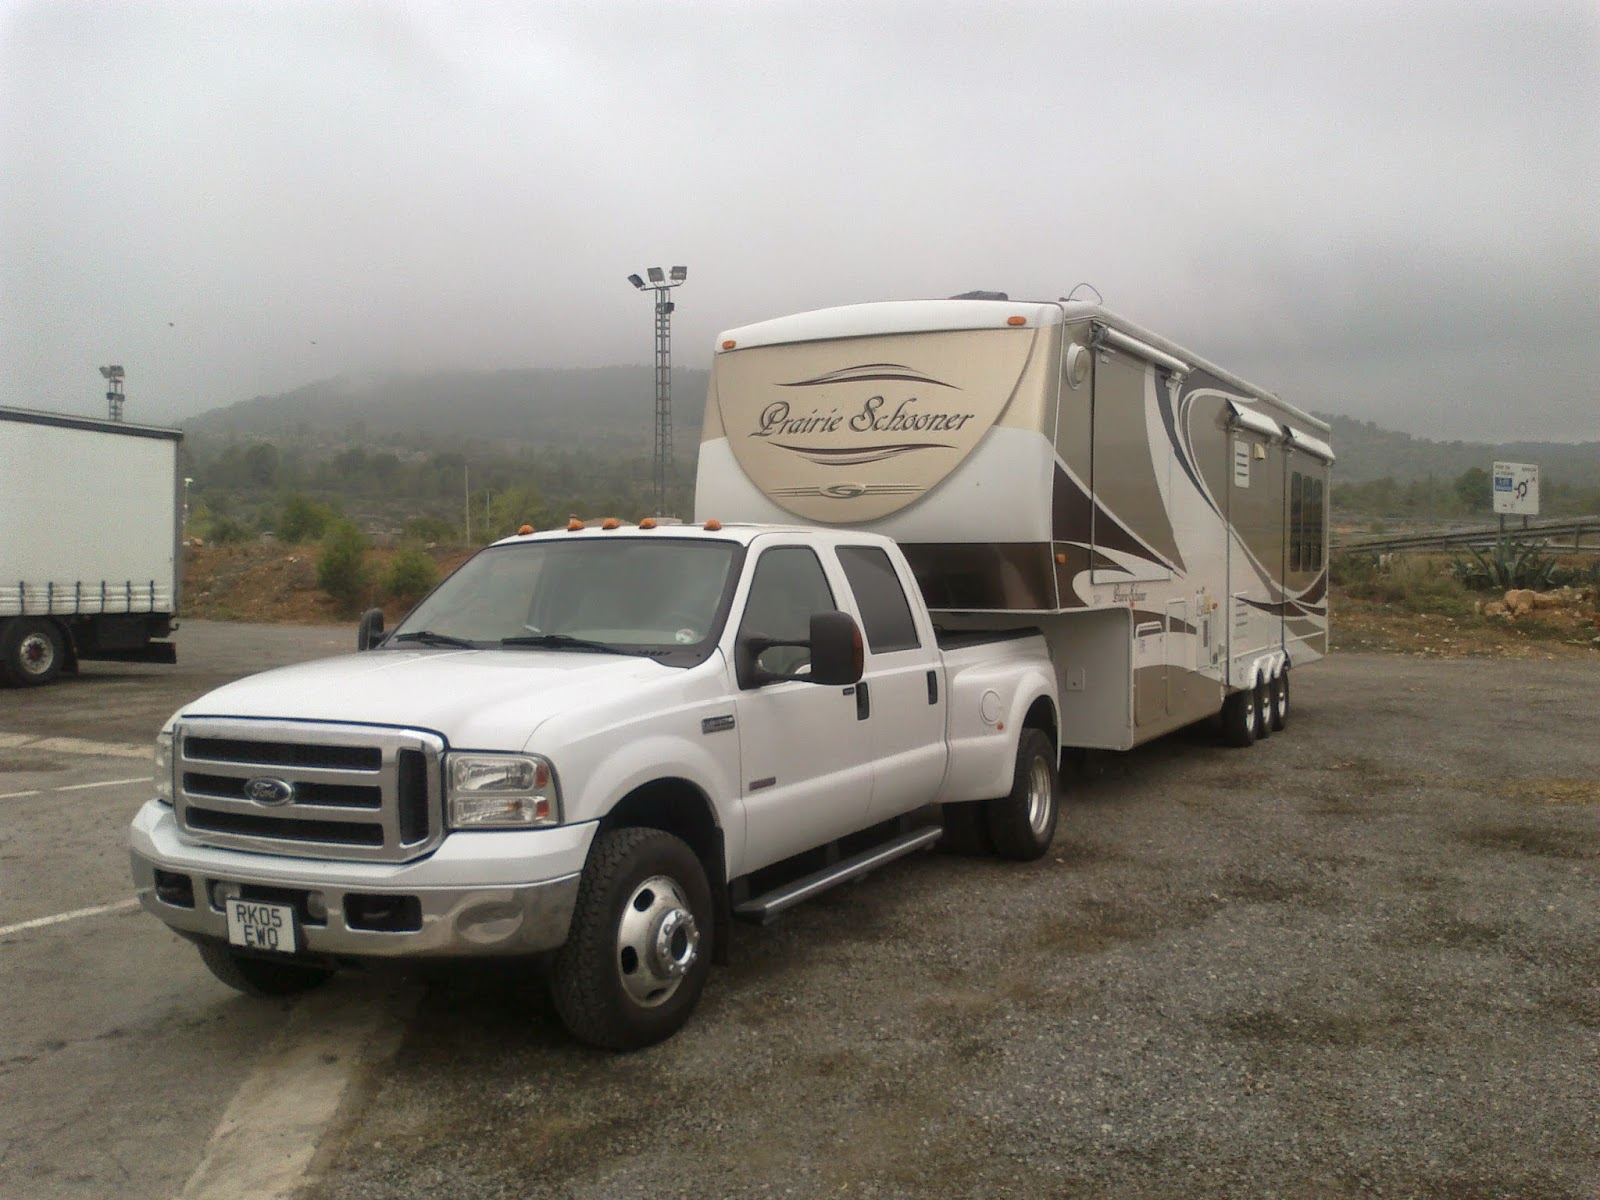 F350 and 5th wheel in the Pyrenees